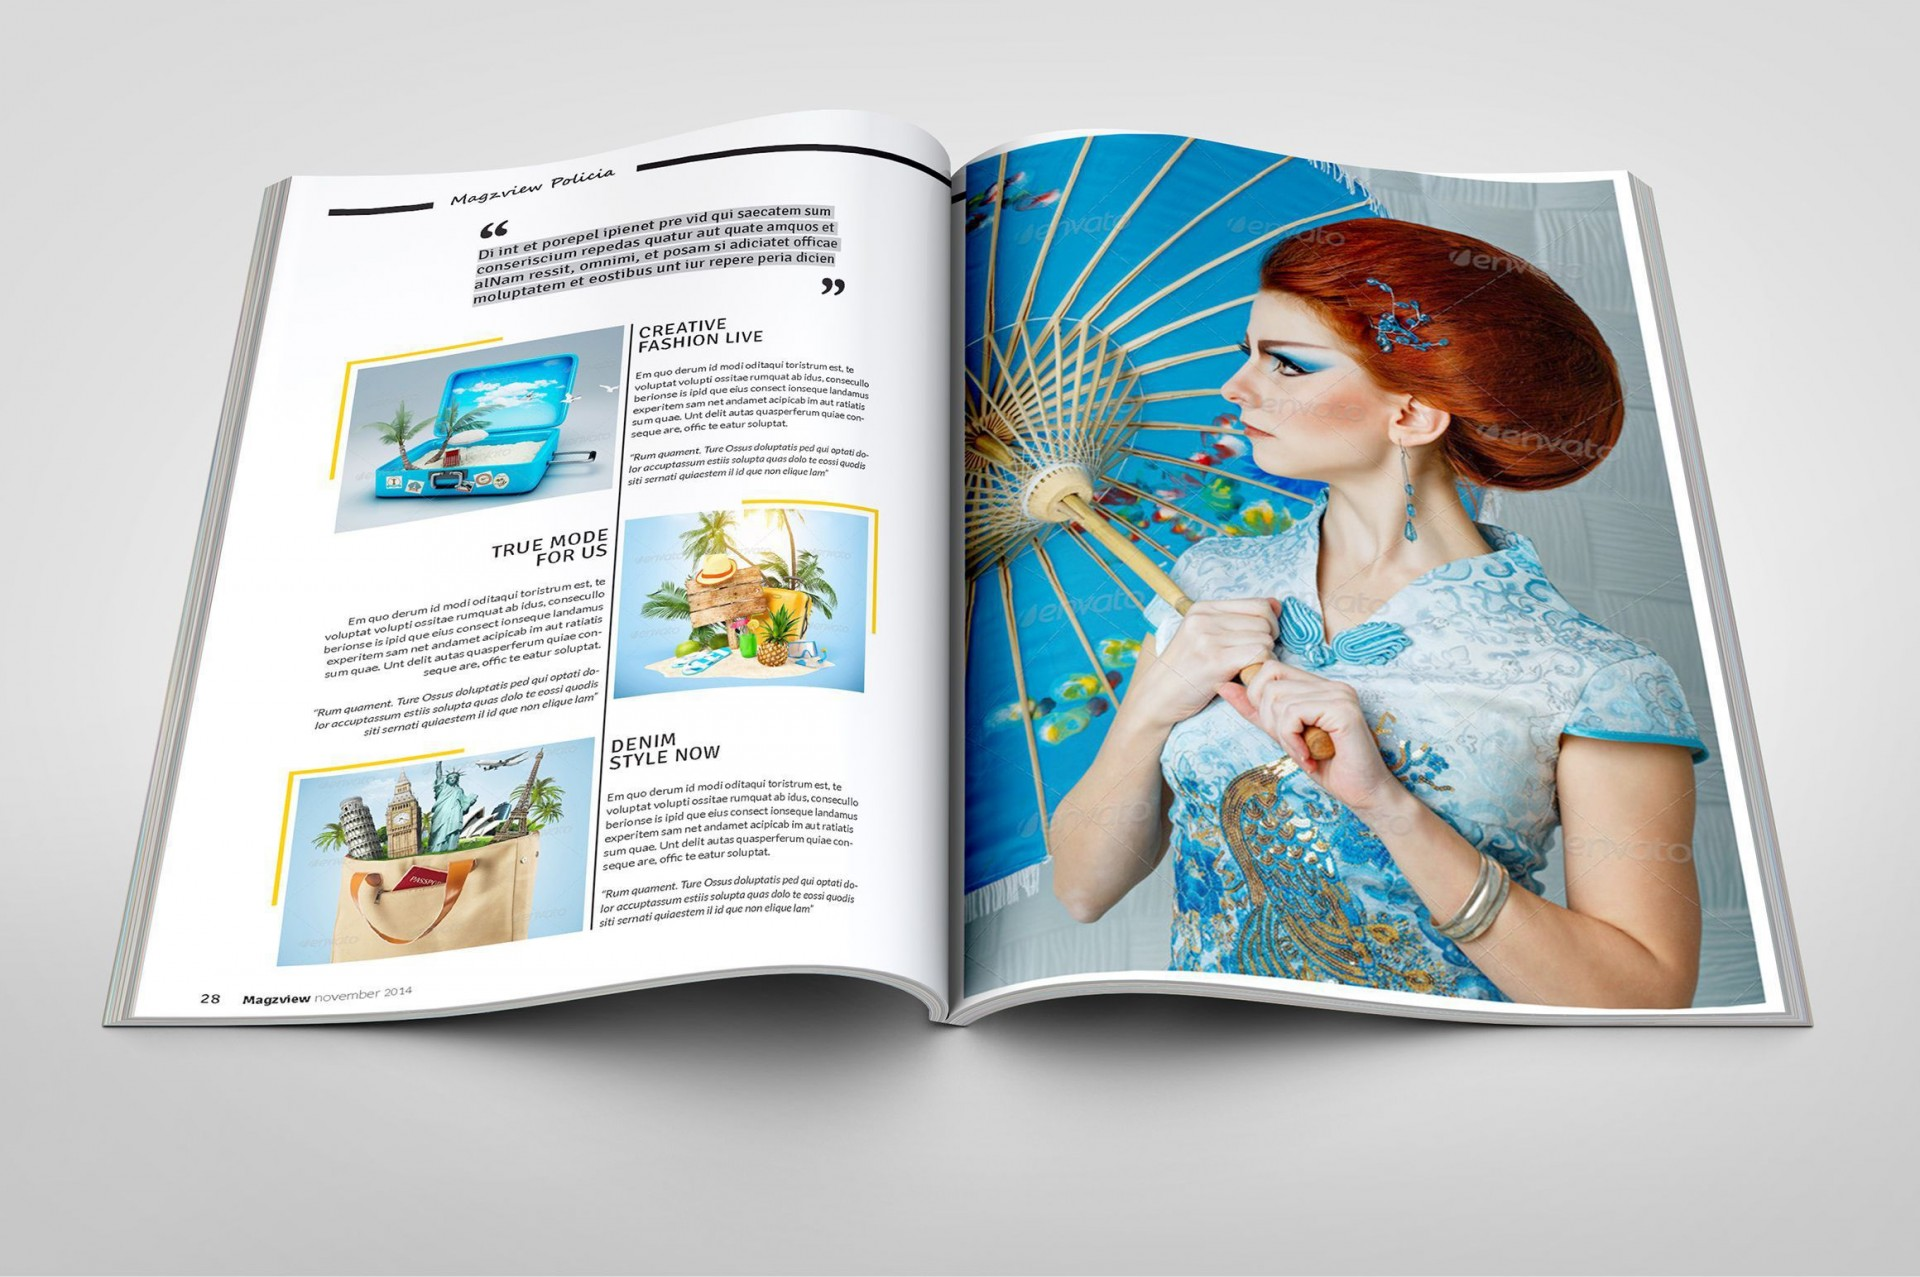 003 Unusual School Magazine Layout Template Free Download Image 1920